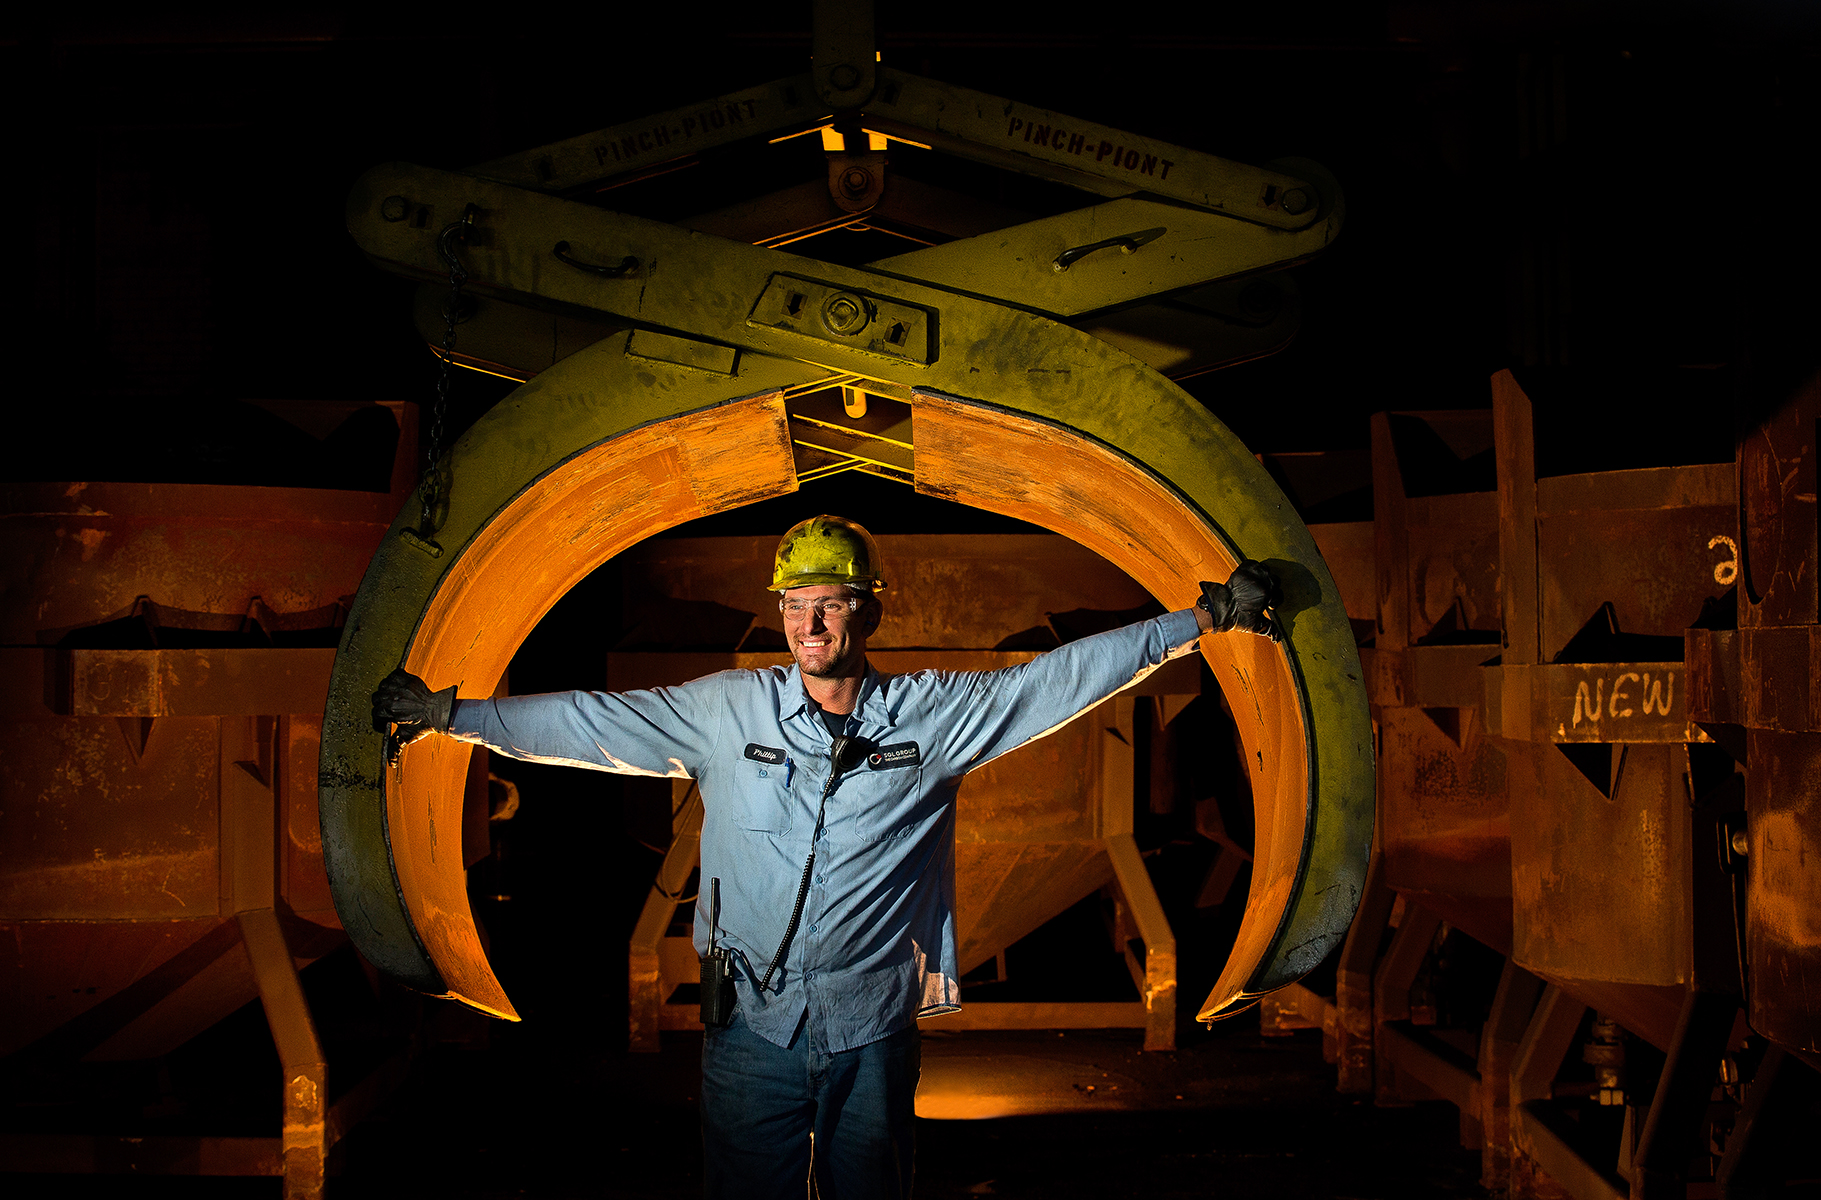 A man wearing a hard hat and heavy work gloves pauses to have his photo taken in front of Pinch-Point jaws used during manufacturing processes in a plant in Morgonton, NC. The giant pinch point jaws are lit from inside to focus attention on the employee.